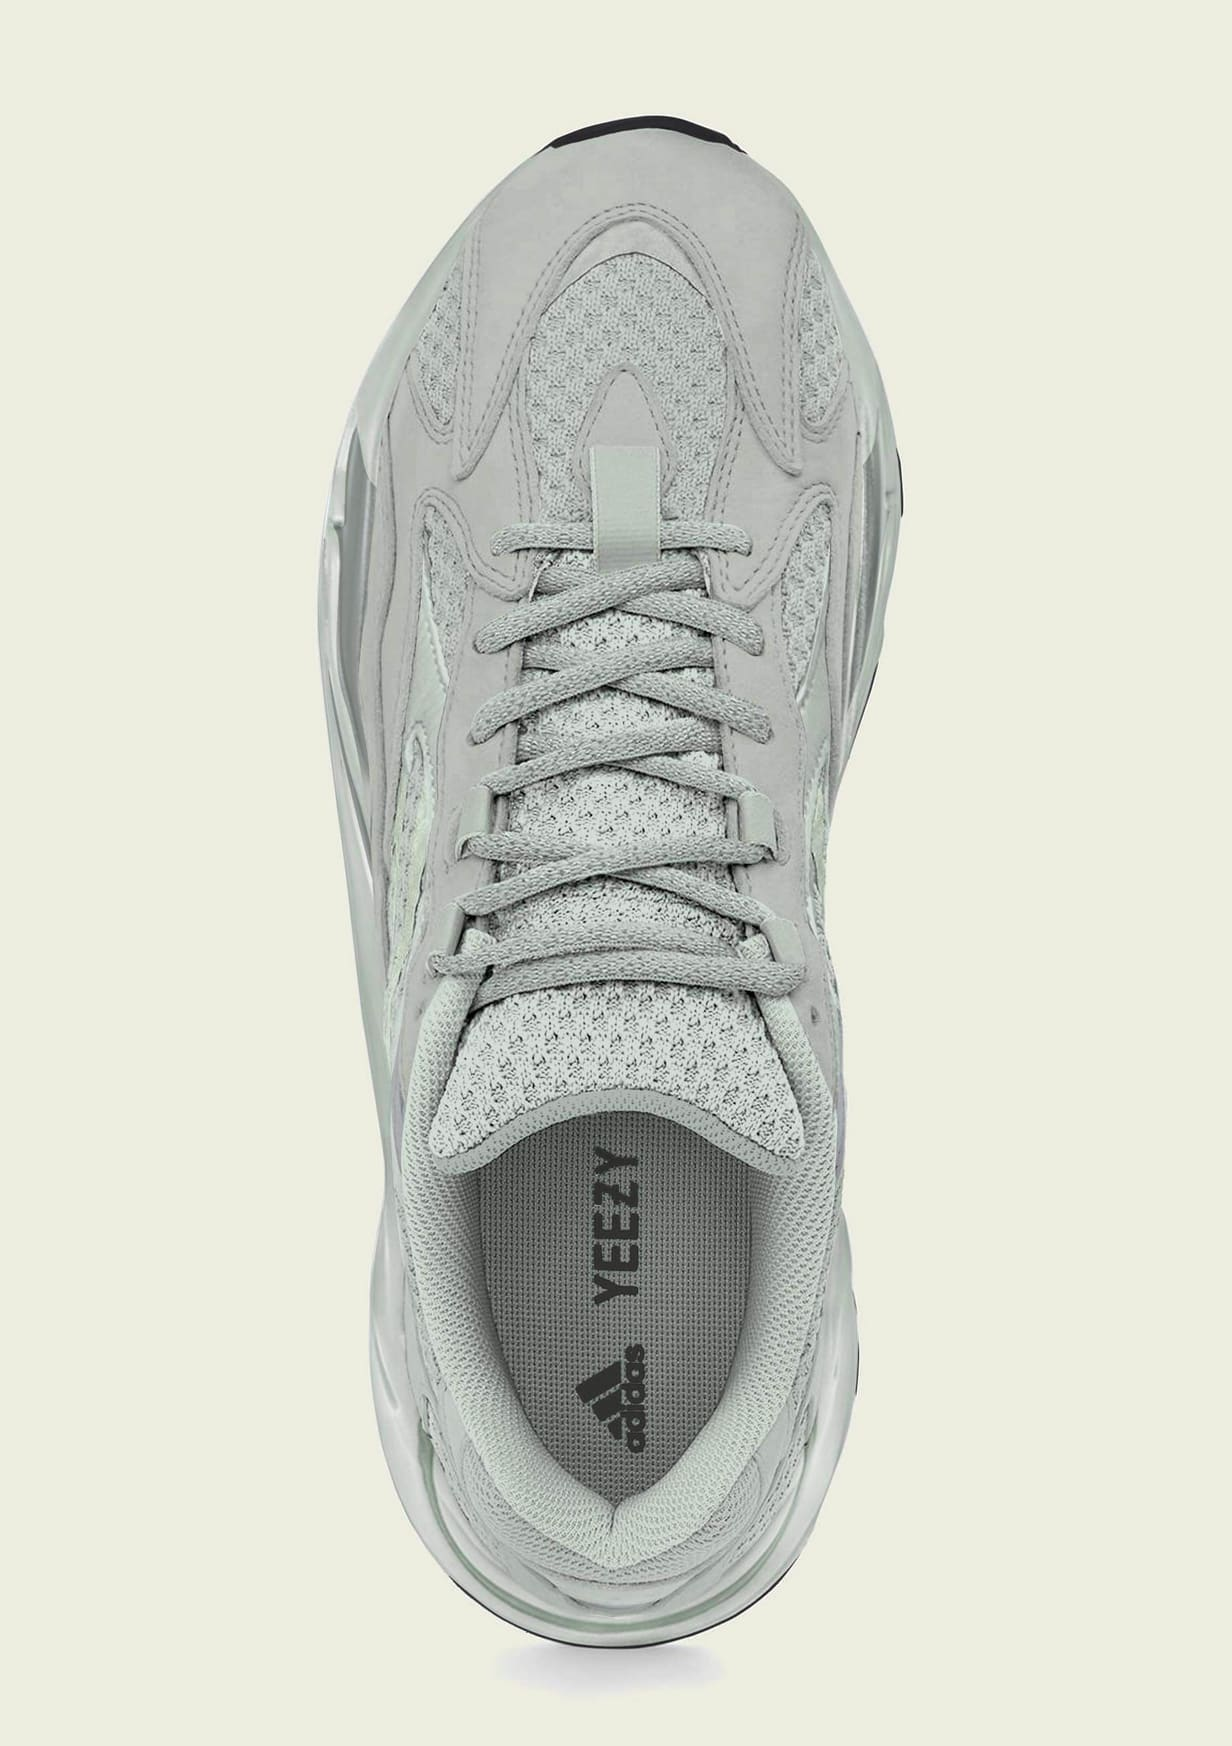 quality design 30eef 8d1ce Adidas Yeezy Boost 700 V2 'Hospital Blue' Release Date ...